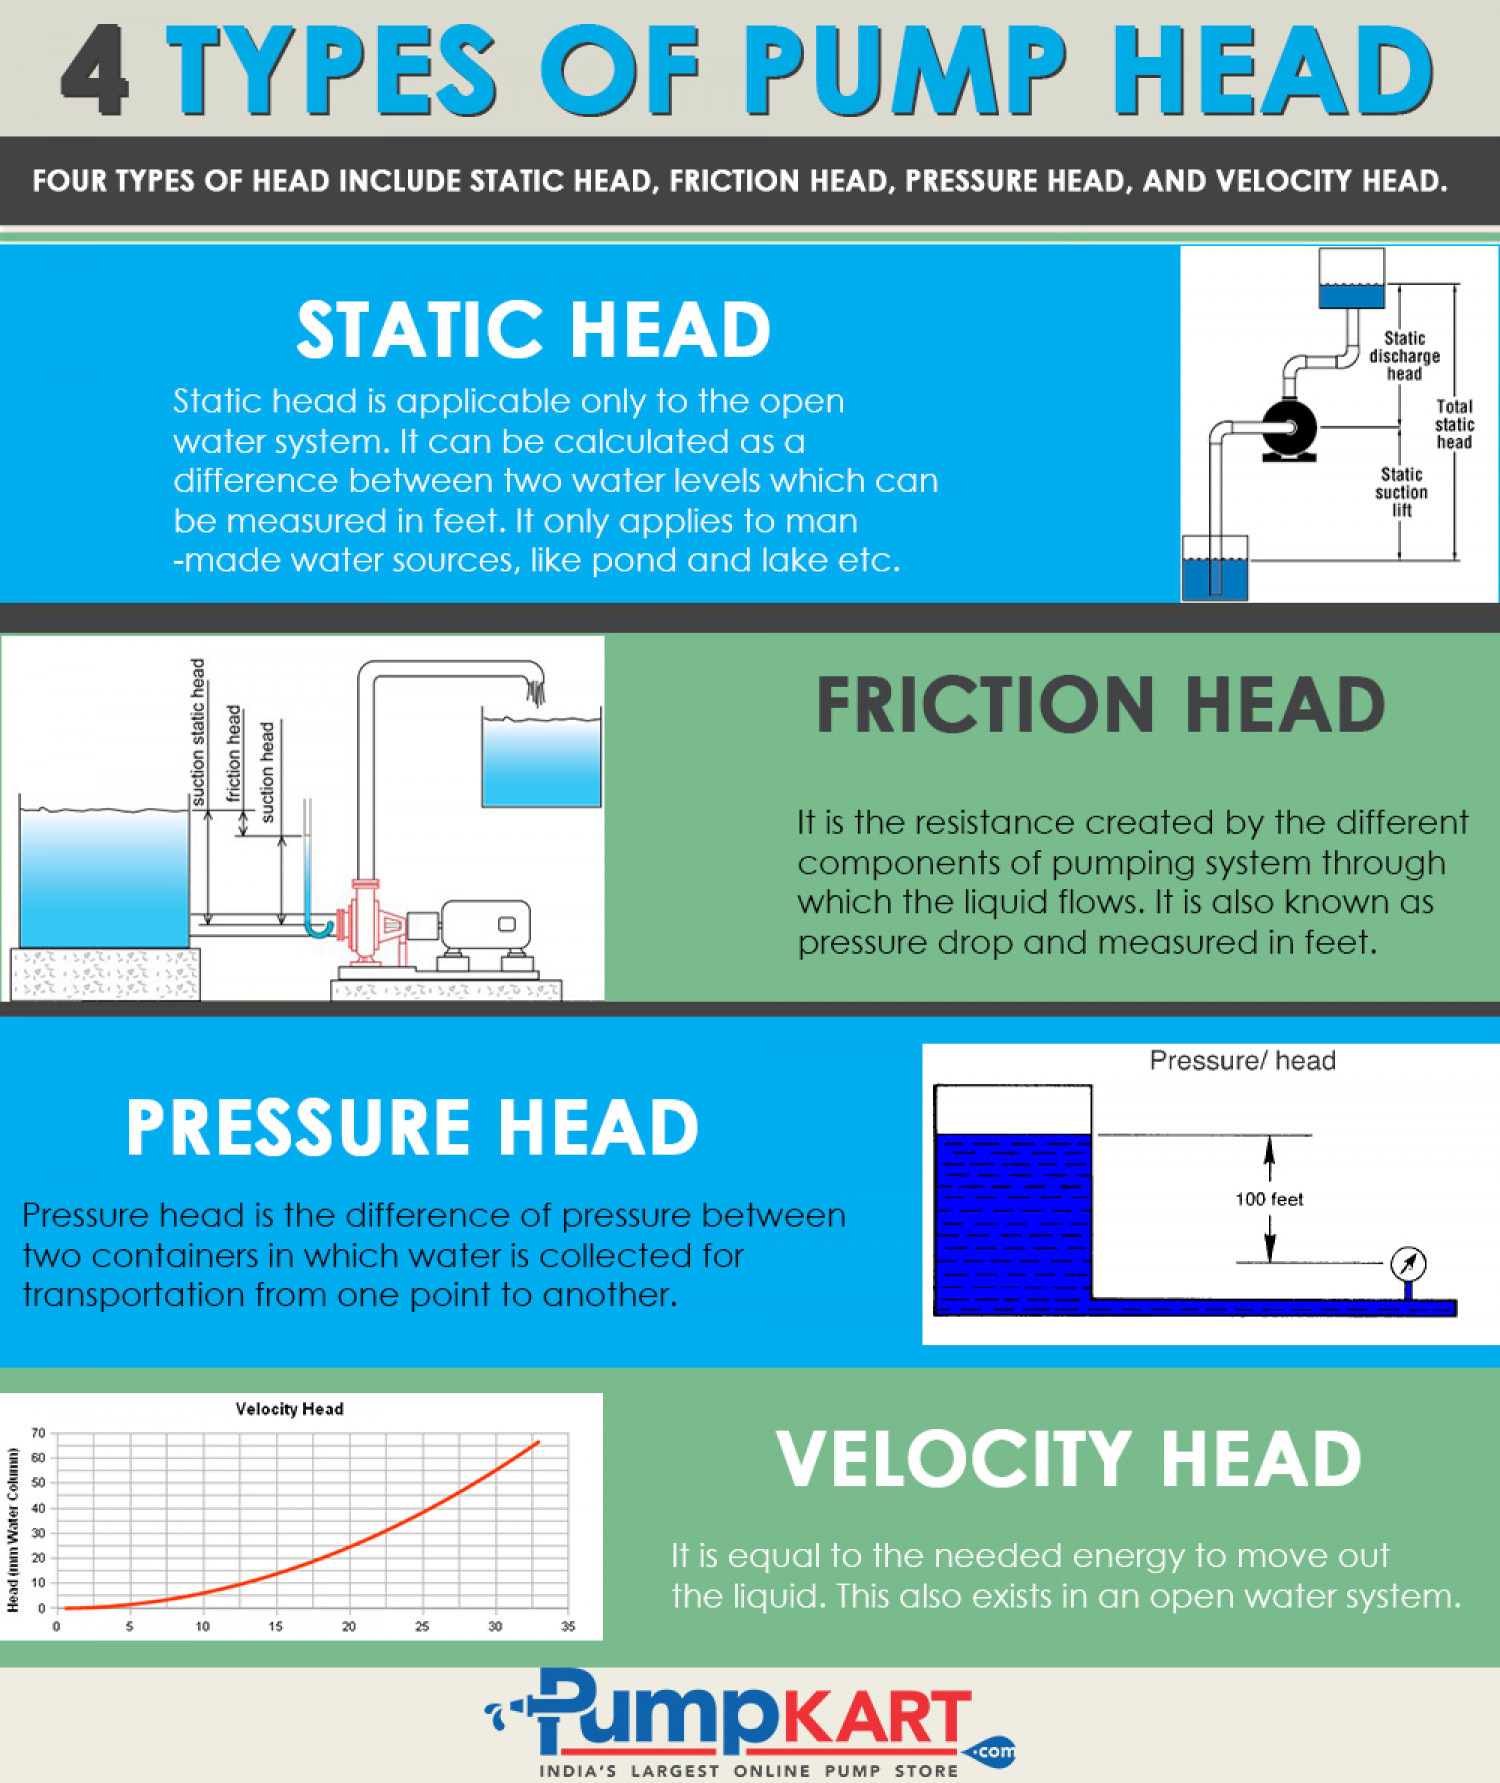 4 Types of Pump Head | Visual.ly